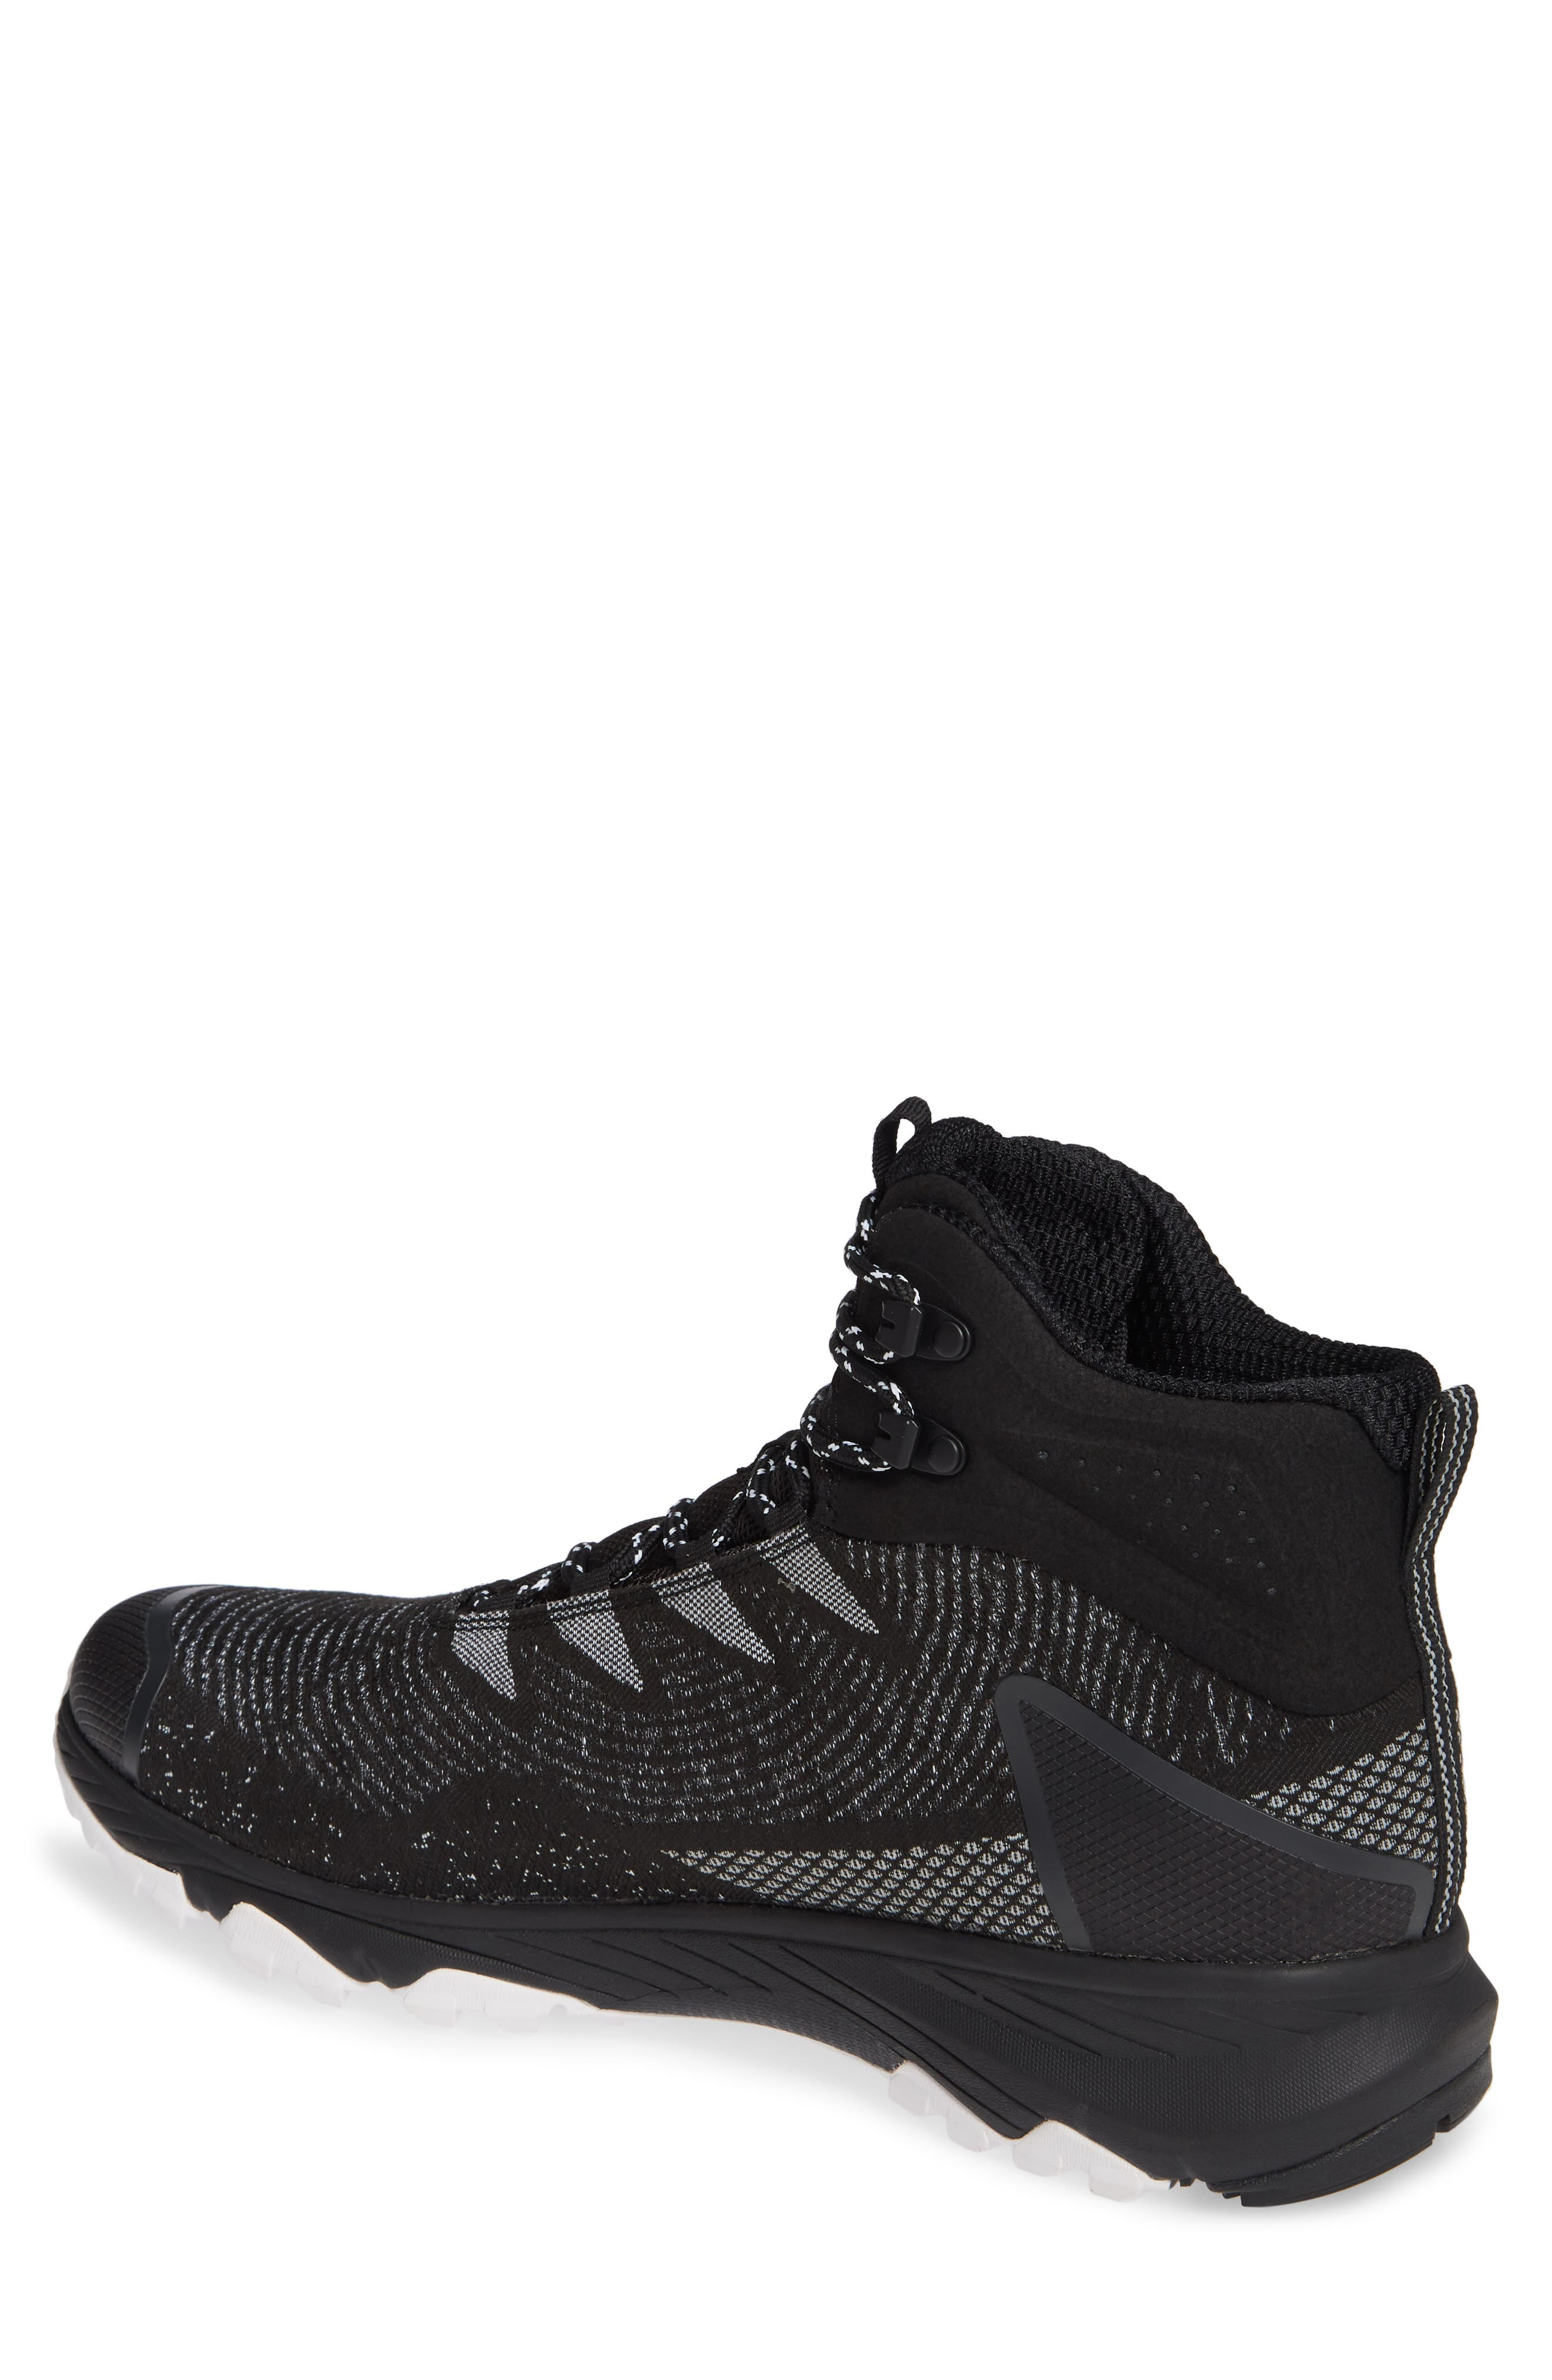 Ultra Fastpack III Mid Gore-Tex<sup>®</sup> Hiking Boot,                             Alternate thumbnail 2, color,                             BLACK/ WHITE